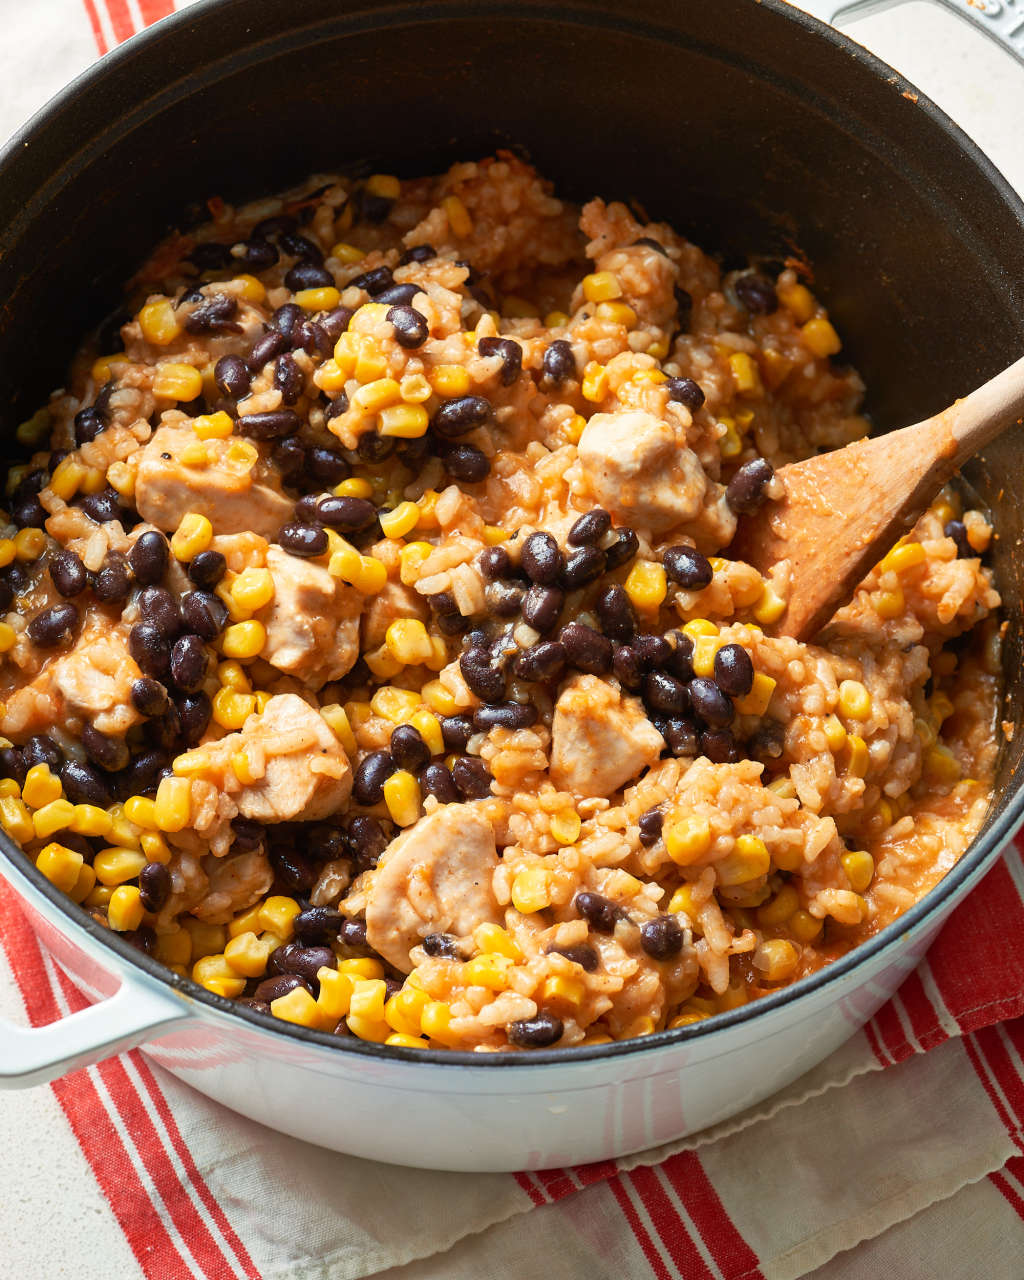 Make These One-Pot BBQ Chicken Bowls In Just 30 Minutes